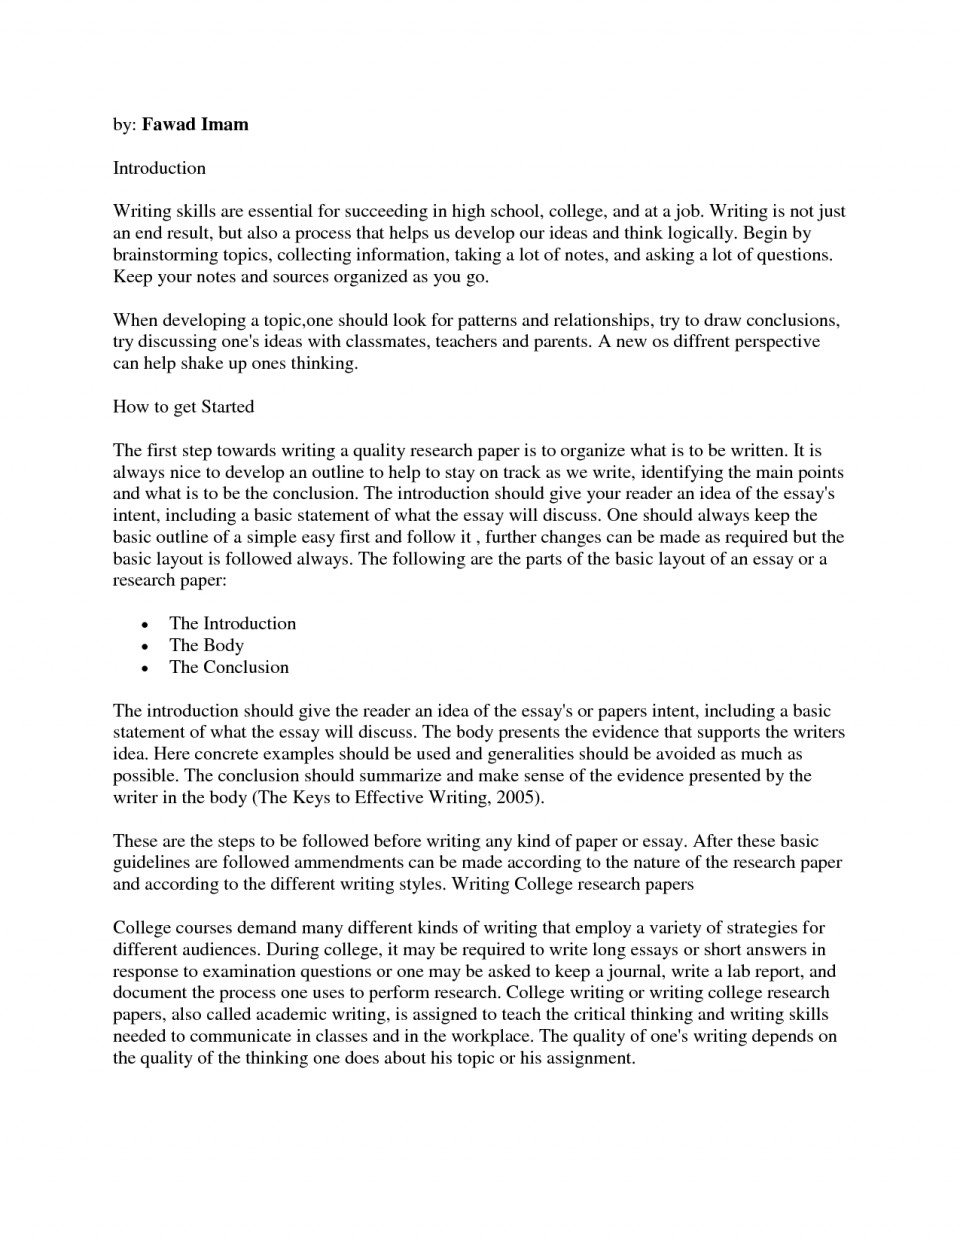 021 Ypfi7ickiv Research Paper How To Breathtaking Write Objectives An Abstract For English A Conclusion Apa 960